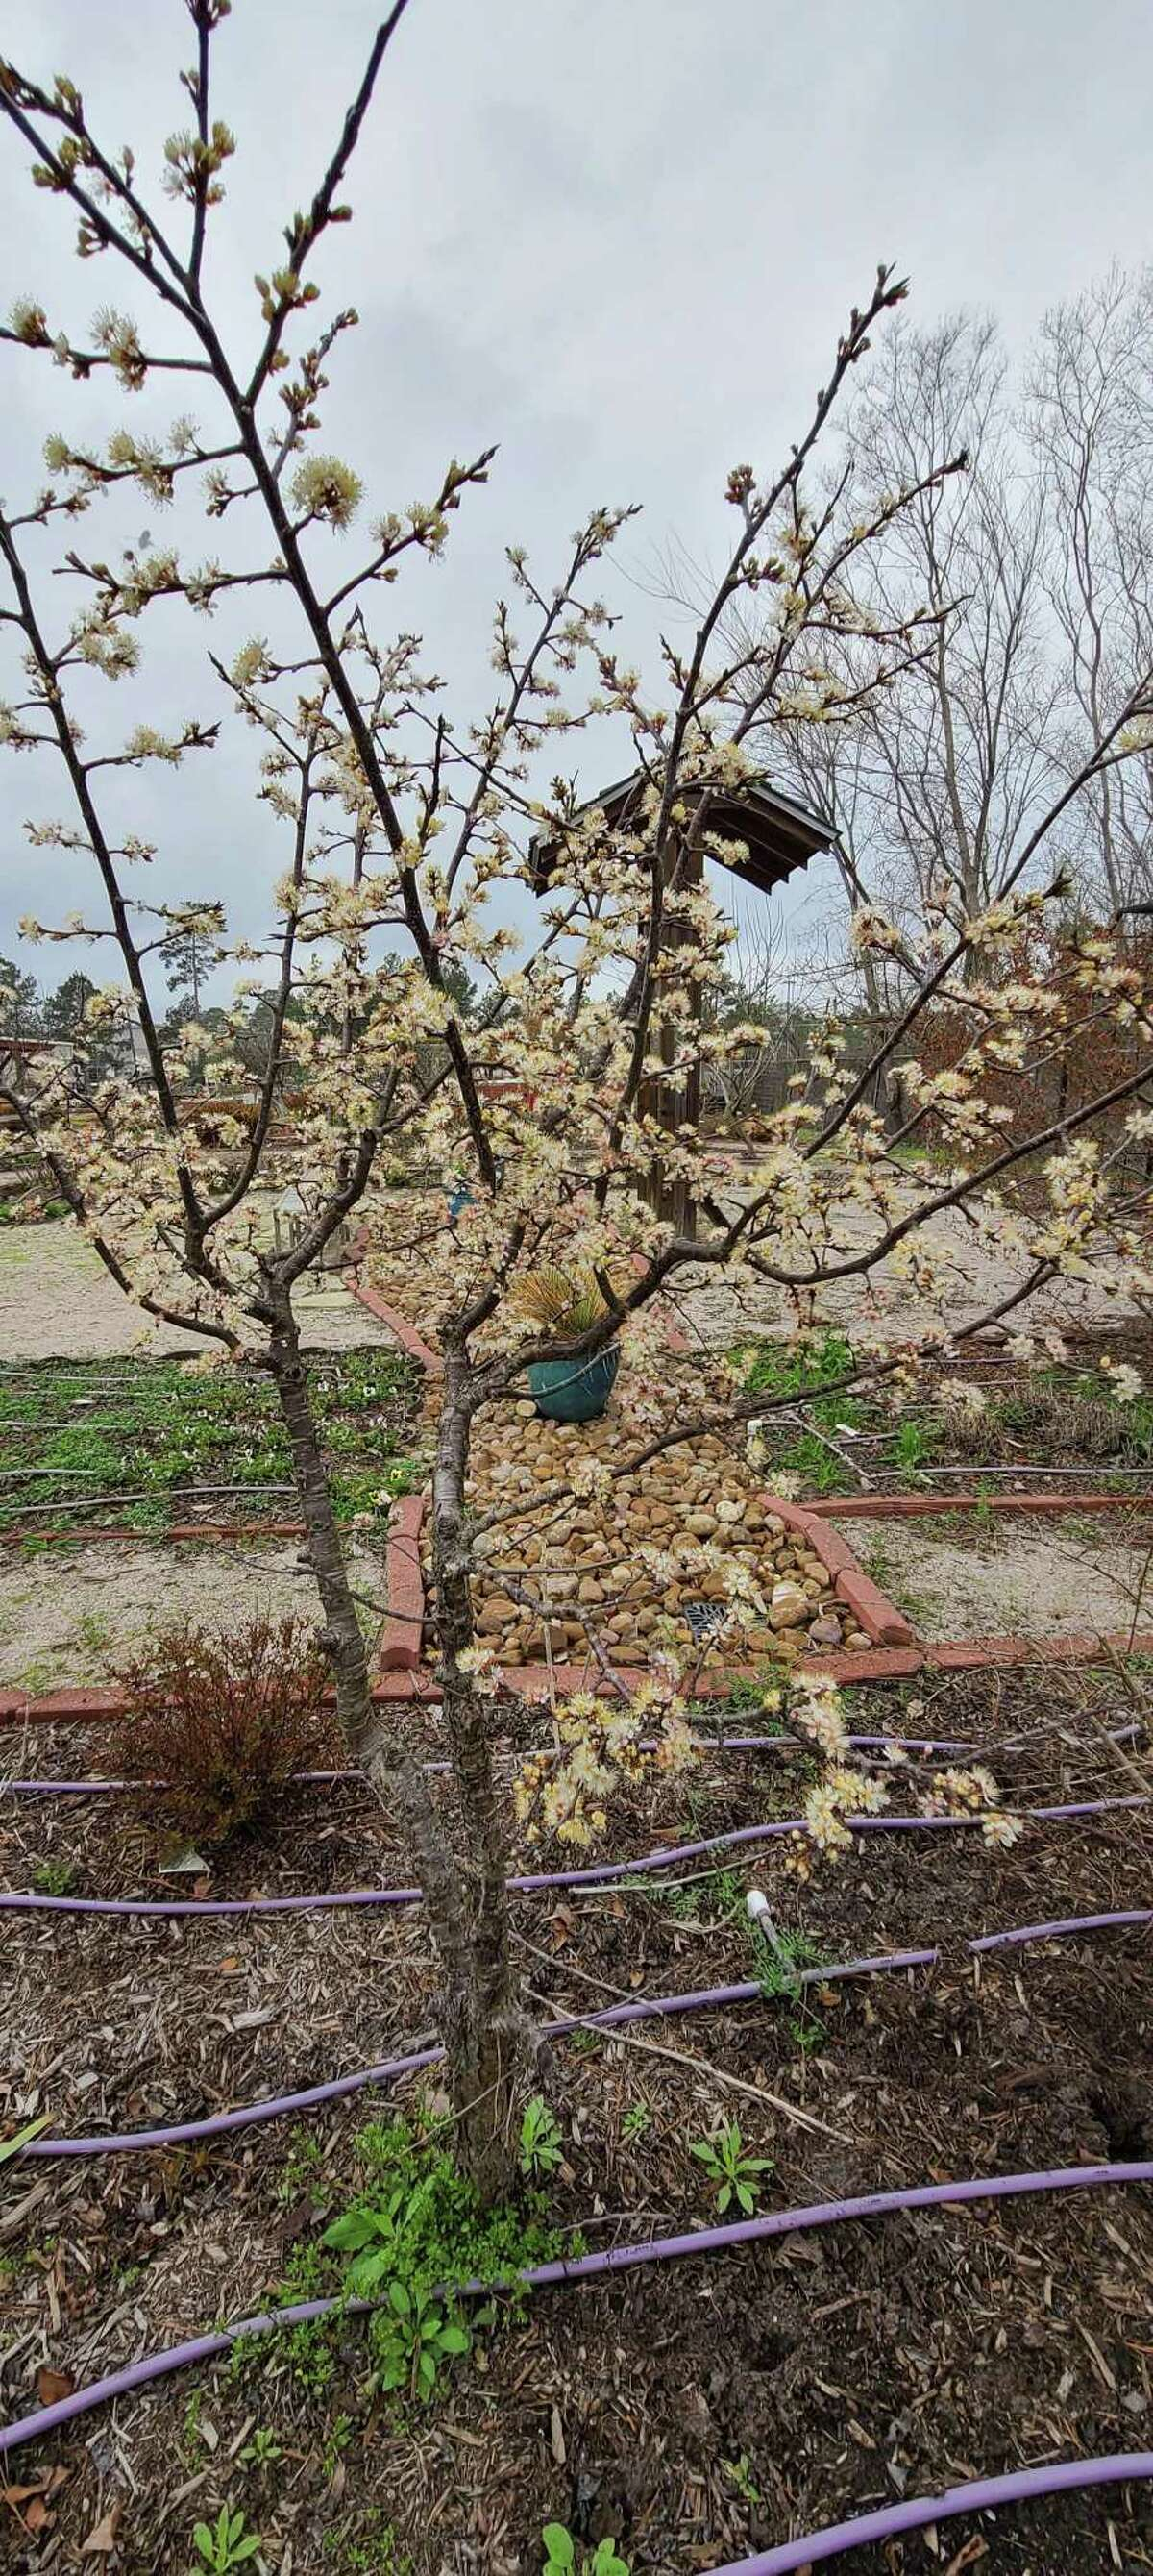 Blooms on a Mexican Plum plant signal the coming of spring.